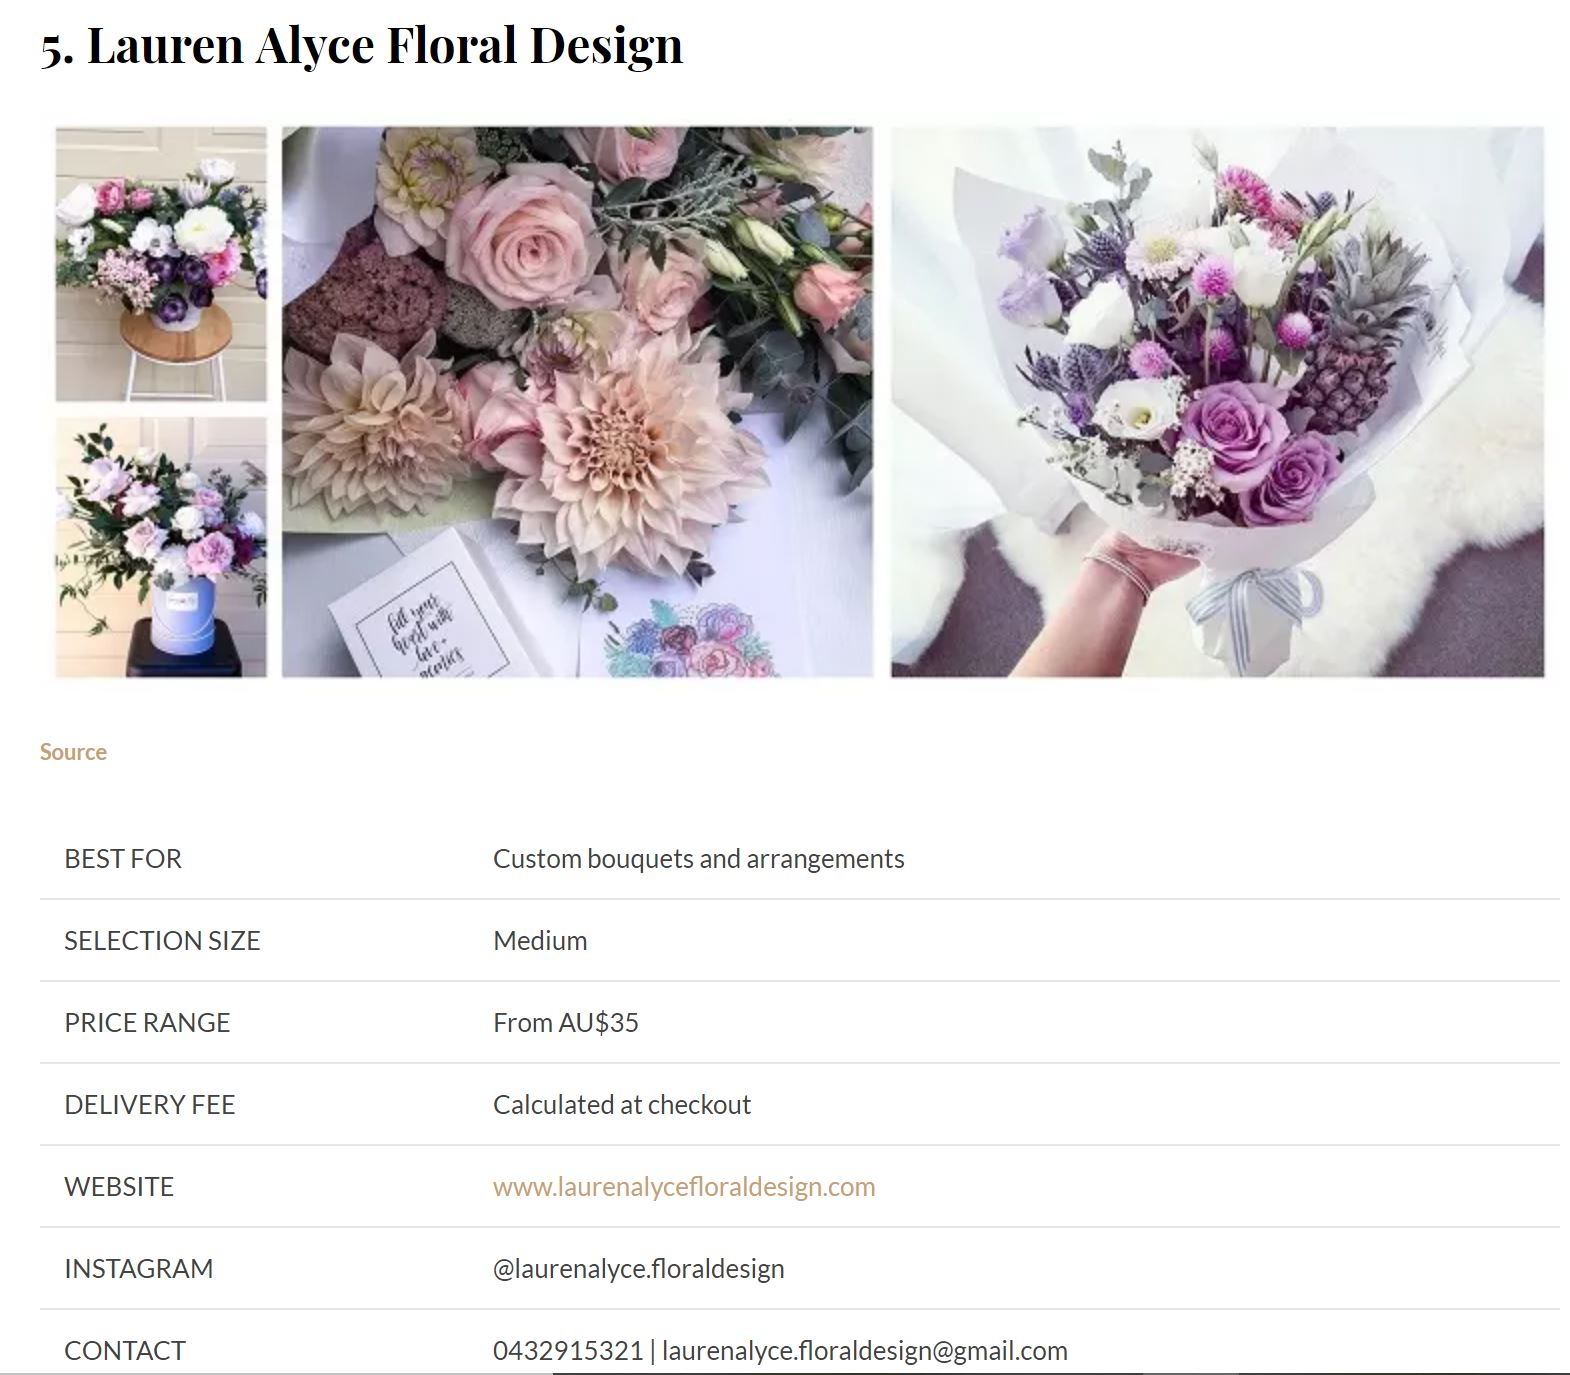 Best Flower Delivery Reviews - Voted in the top 7 on the Central Coast!Visit site here